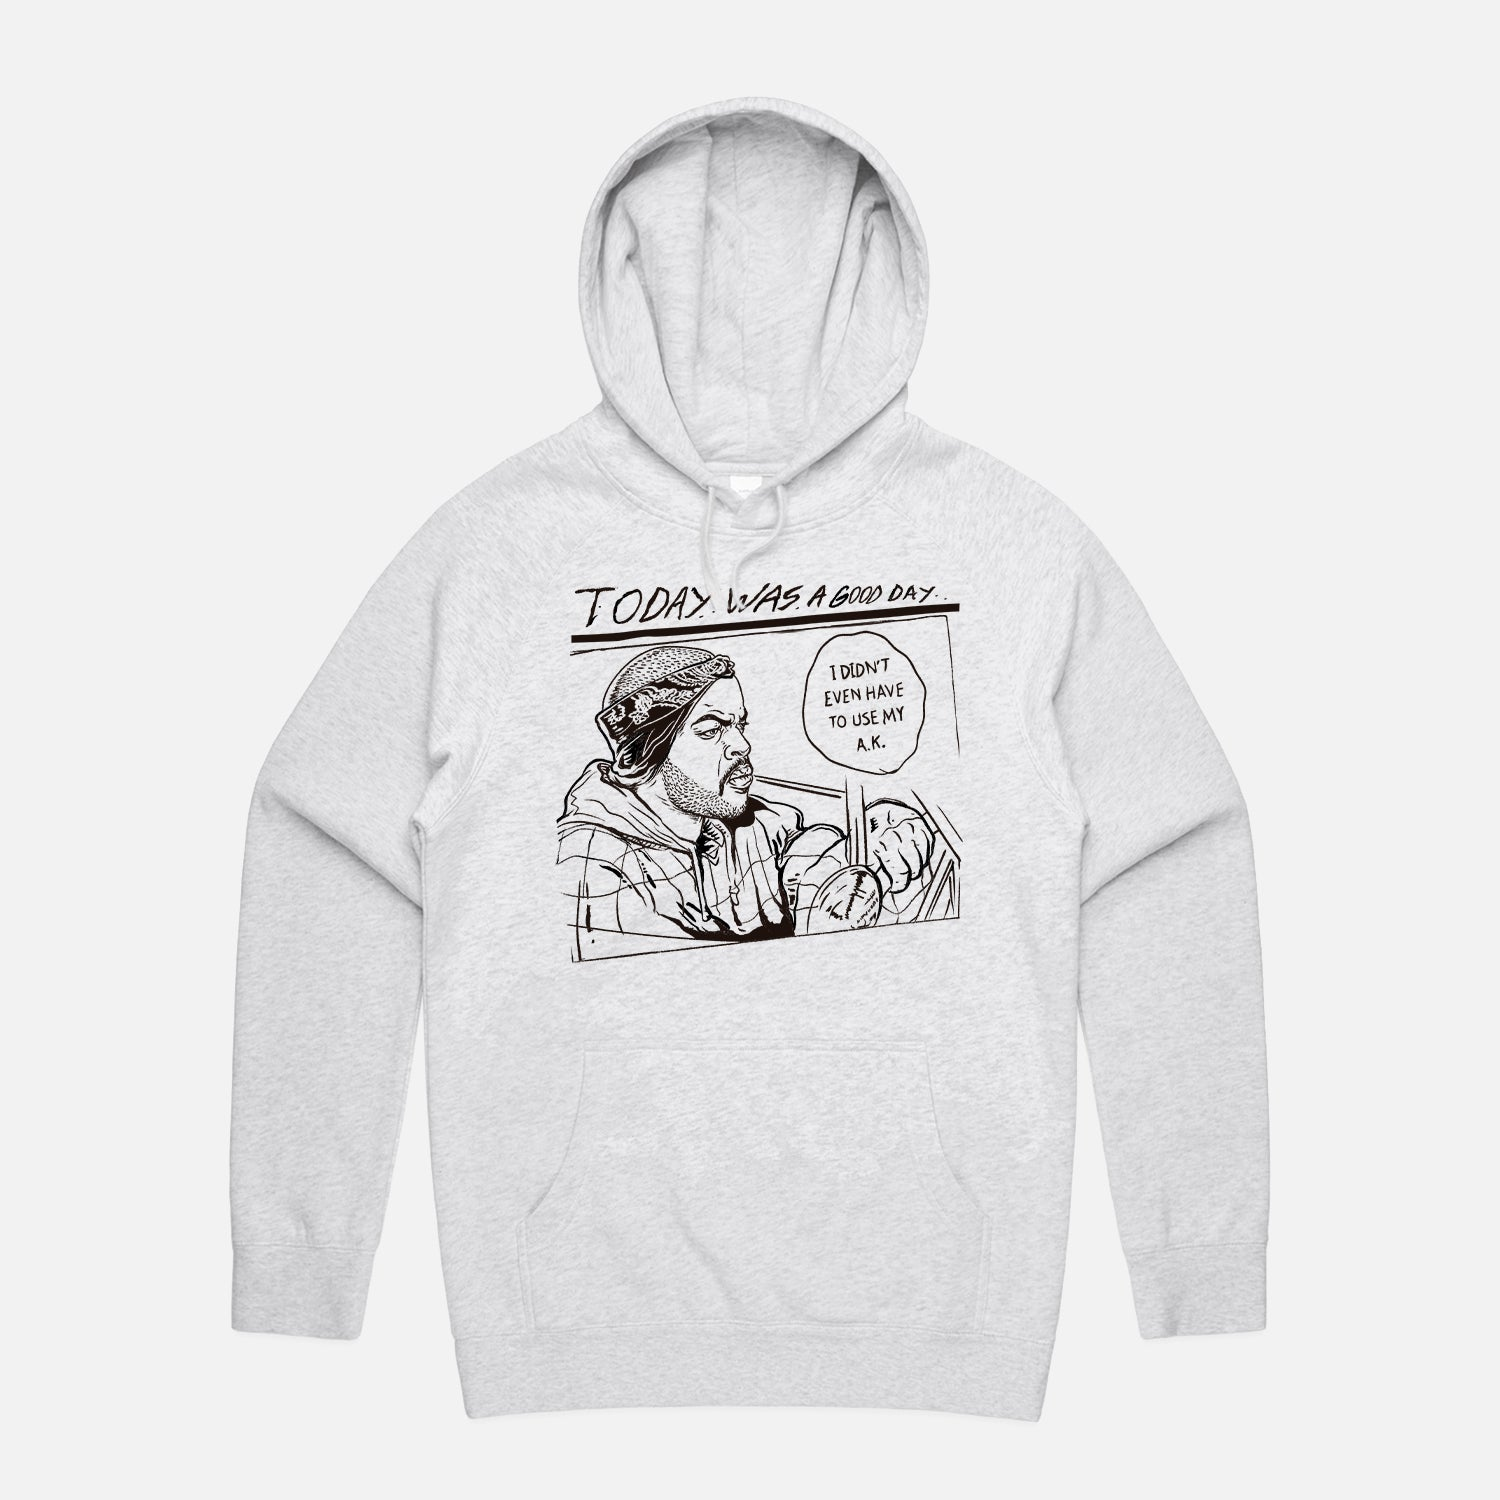 A Good Day Pullover Hoodies